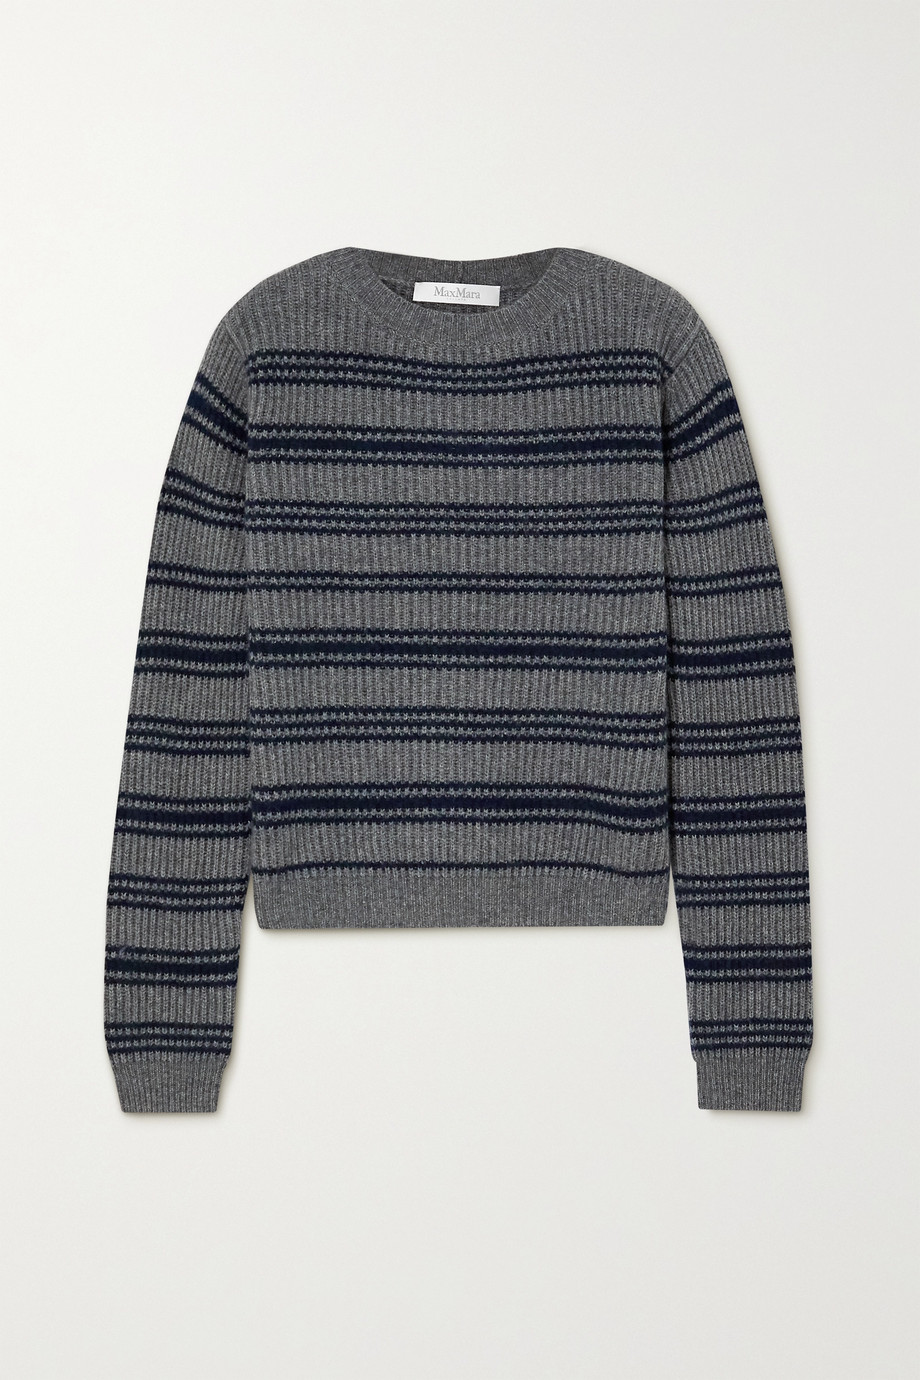 Max Mara Teano striped ribbed wool and cashmere-blend sweater